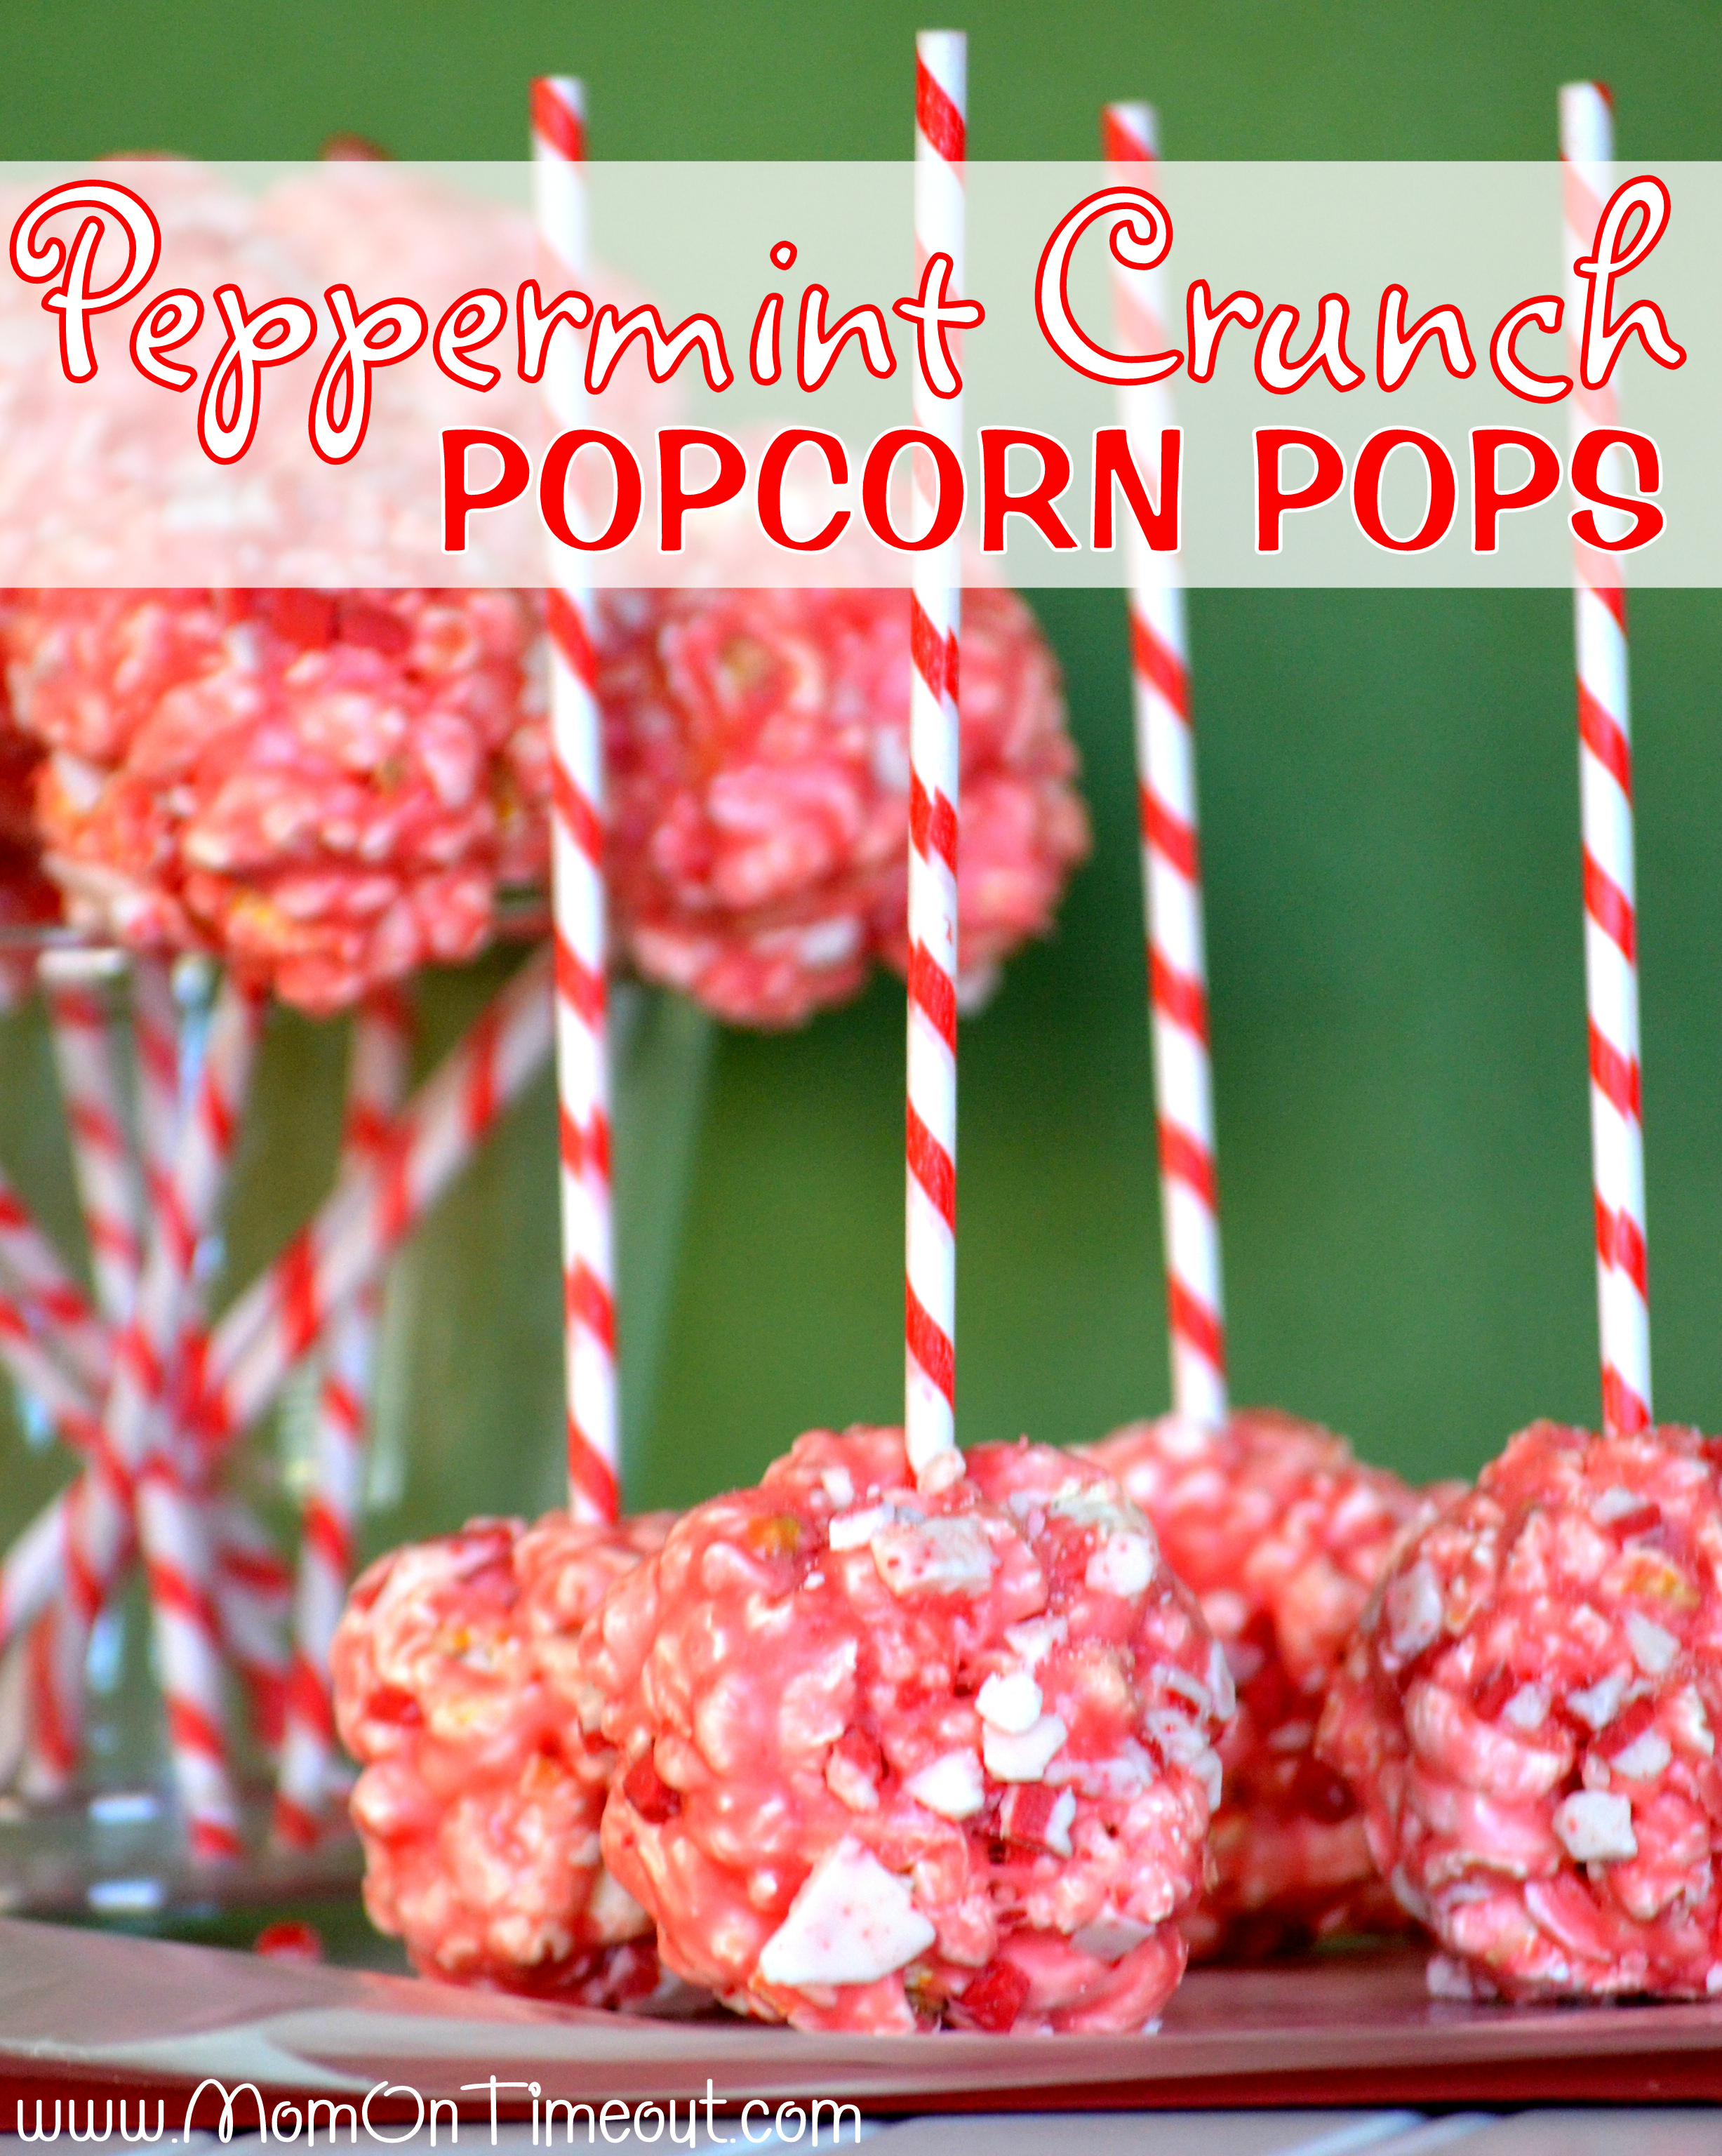 Peppermint-Crunch-Popcorn-Pops